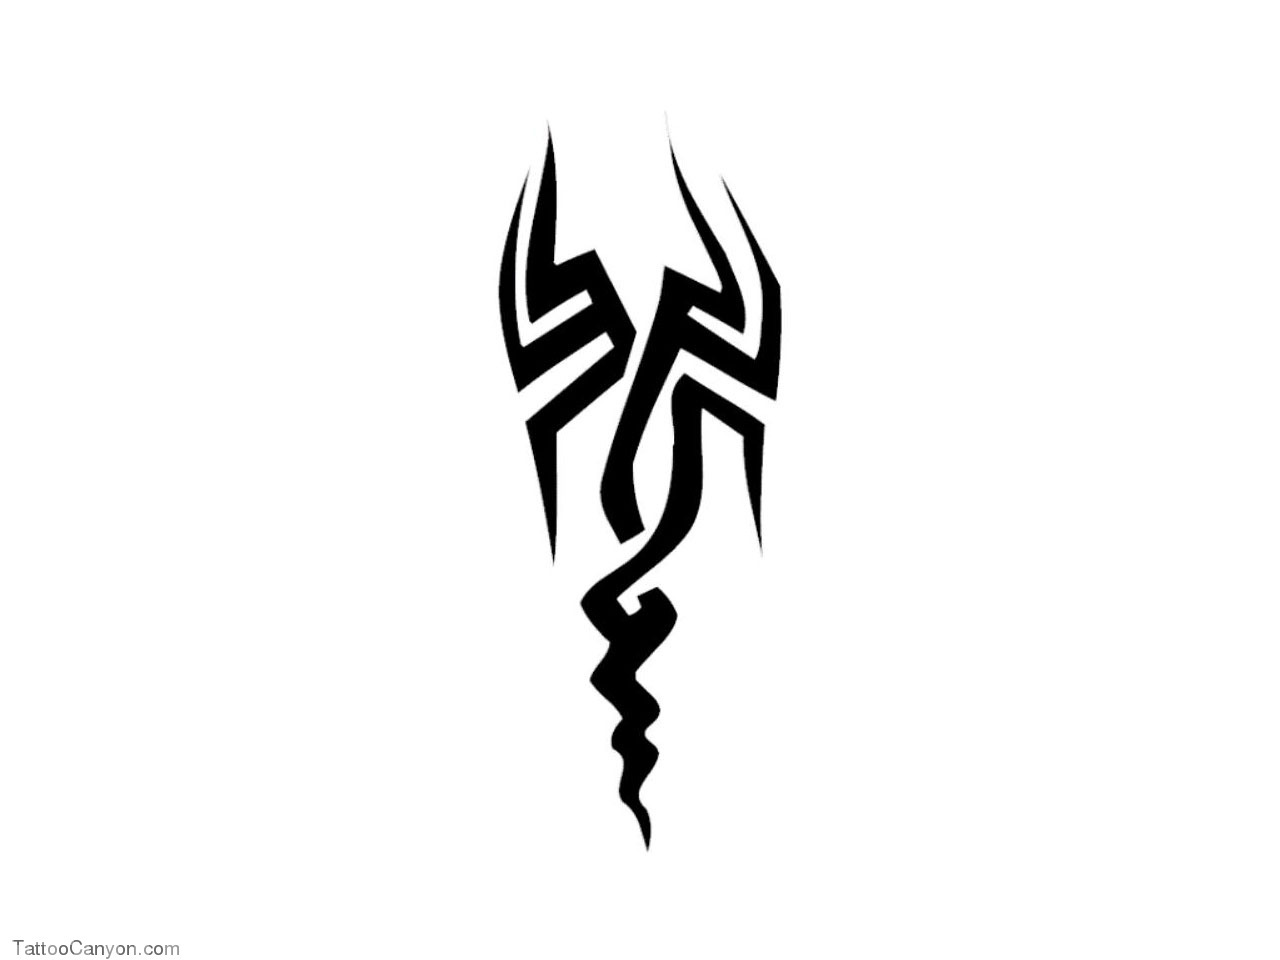 Tribal Sign Like Scorpion Tattoo Wallpaper Picture Short News Poster 1280x960